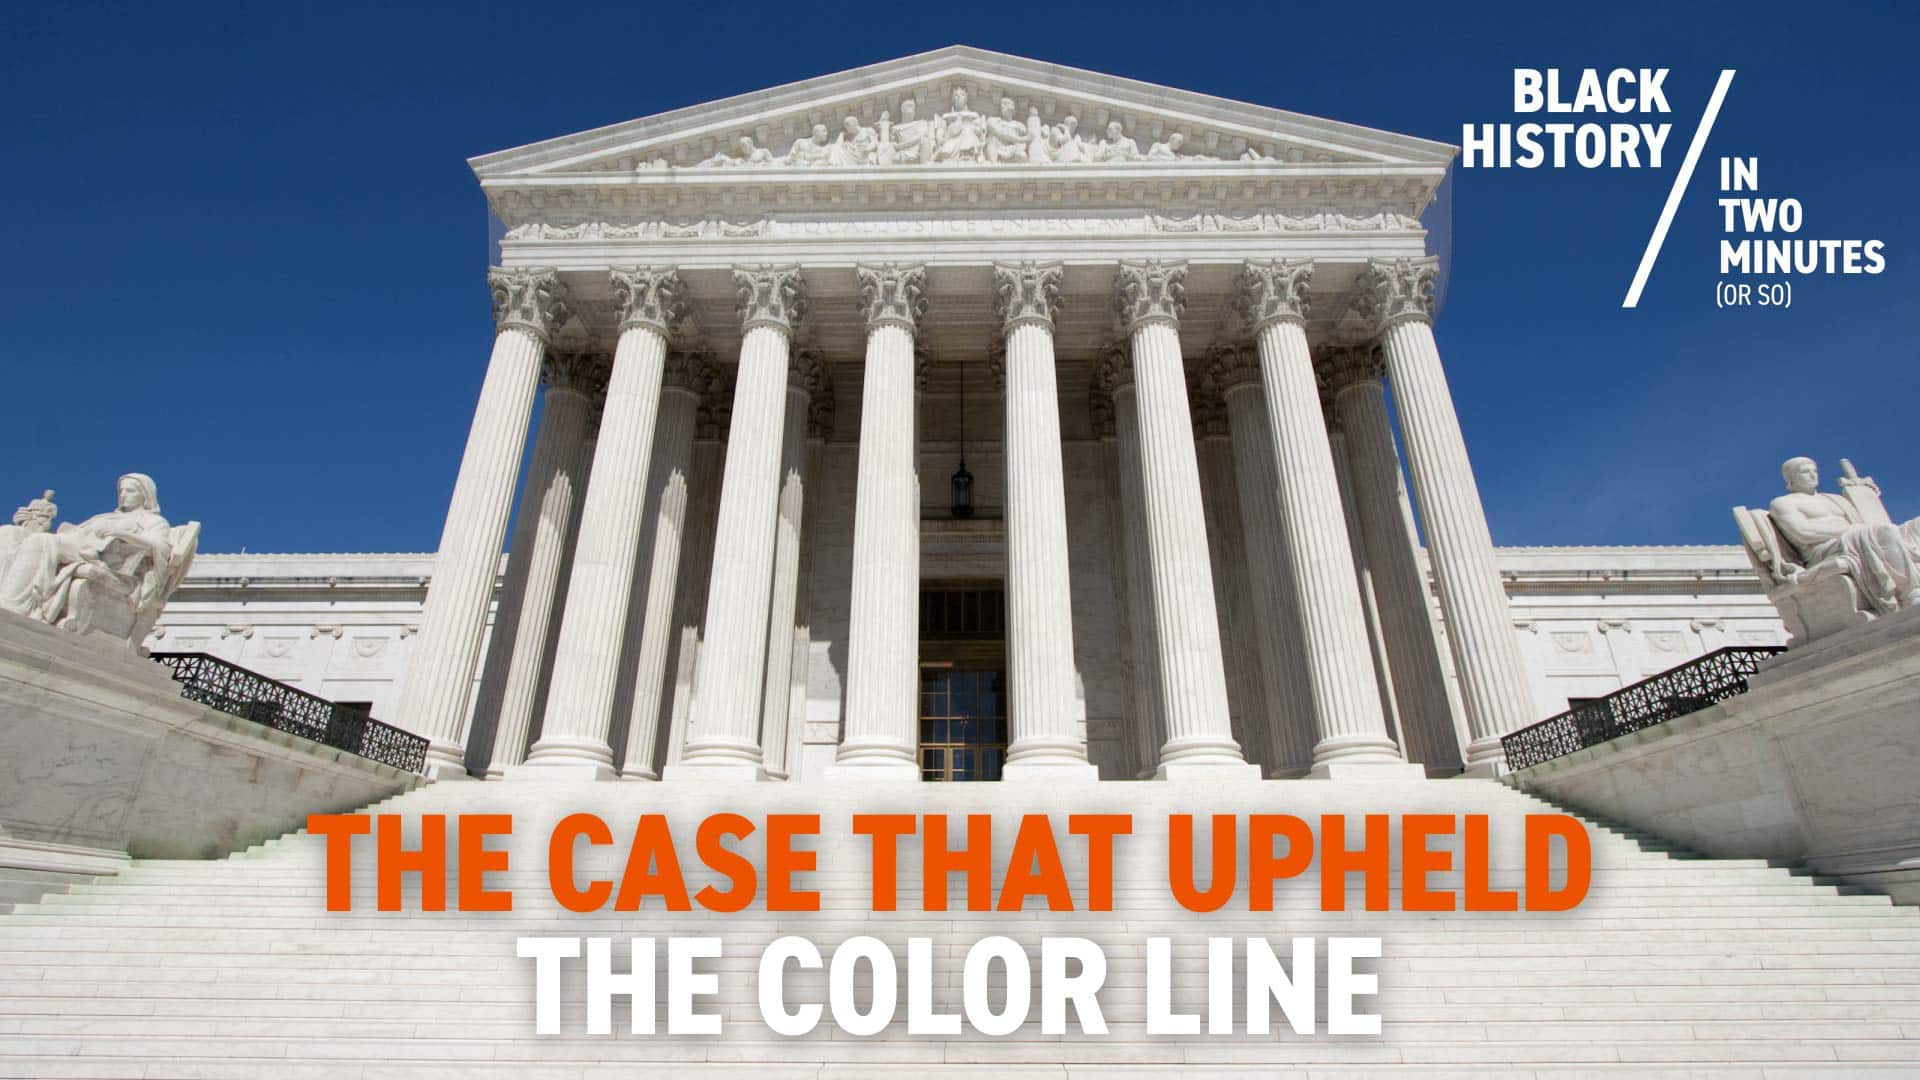 Separate But Equal: Homer Plessy and the Case That Upheld the Color Line